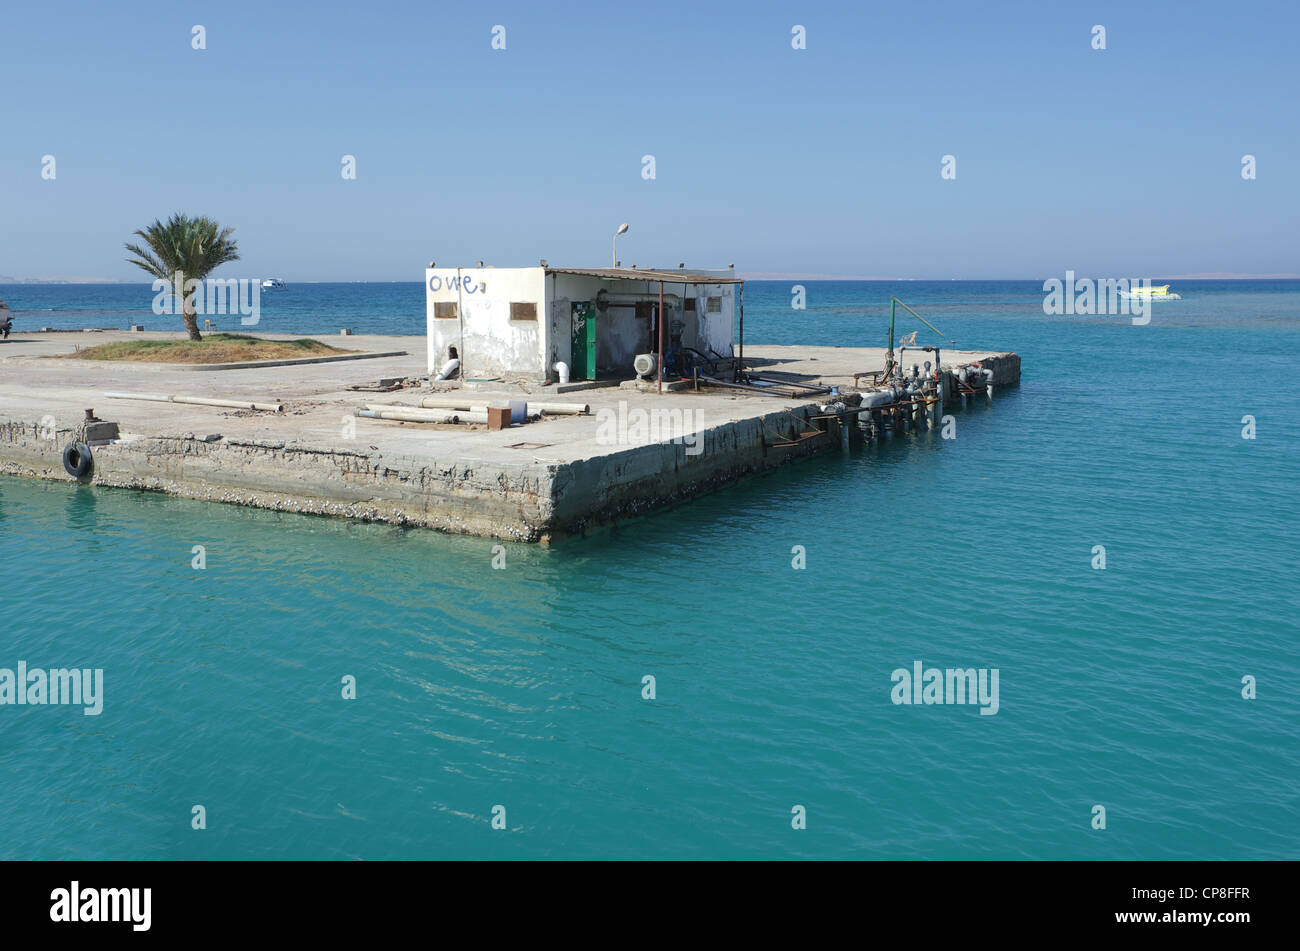 Pier with built structure. Red sea, Hurghada, Egypt - Stock Image